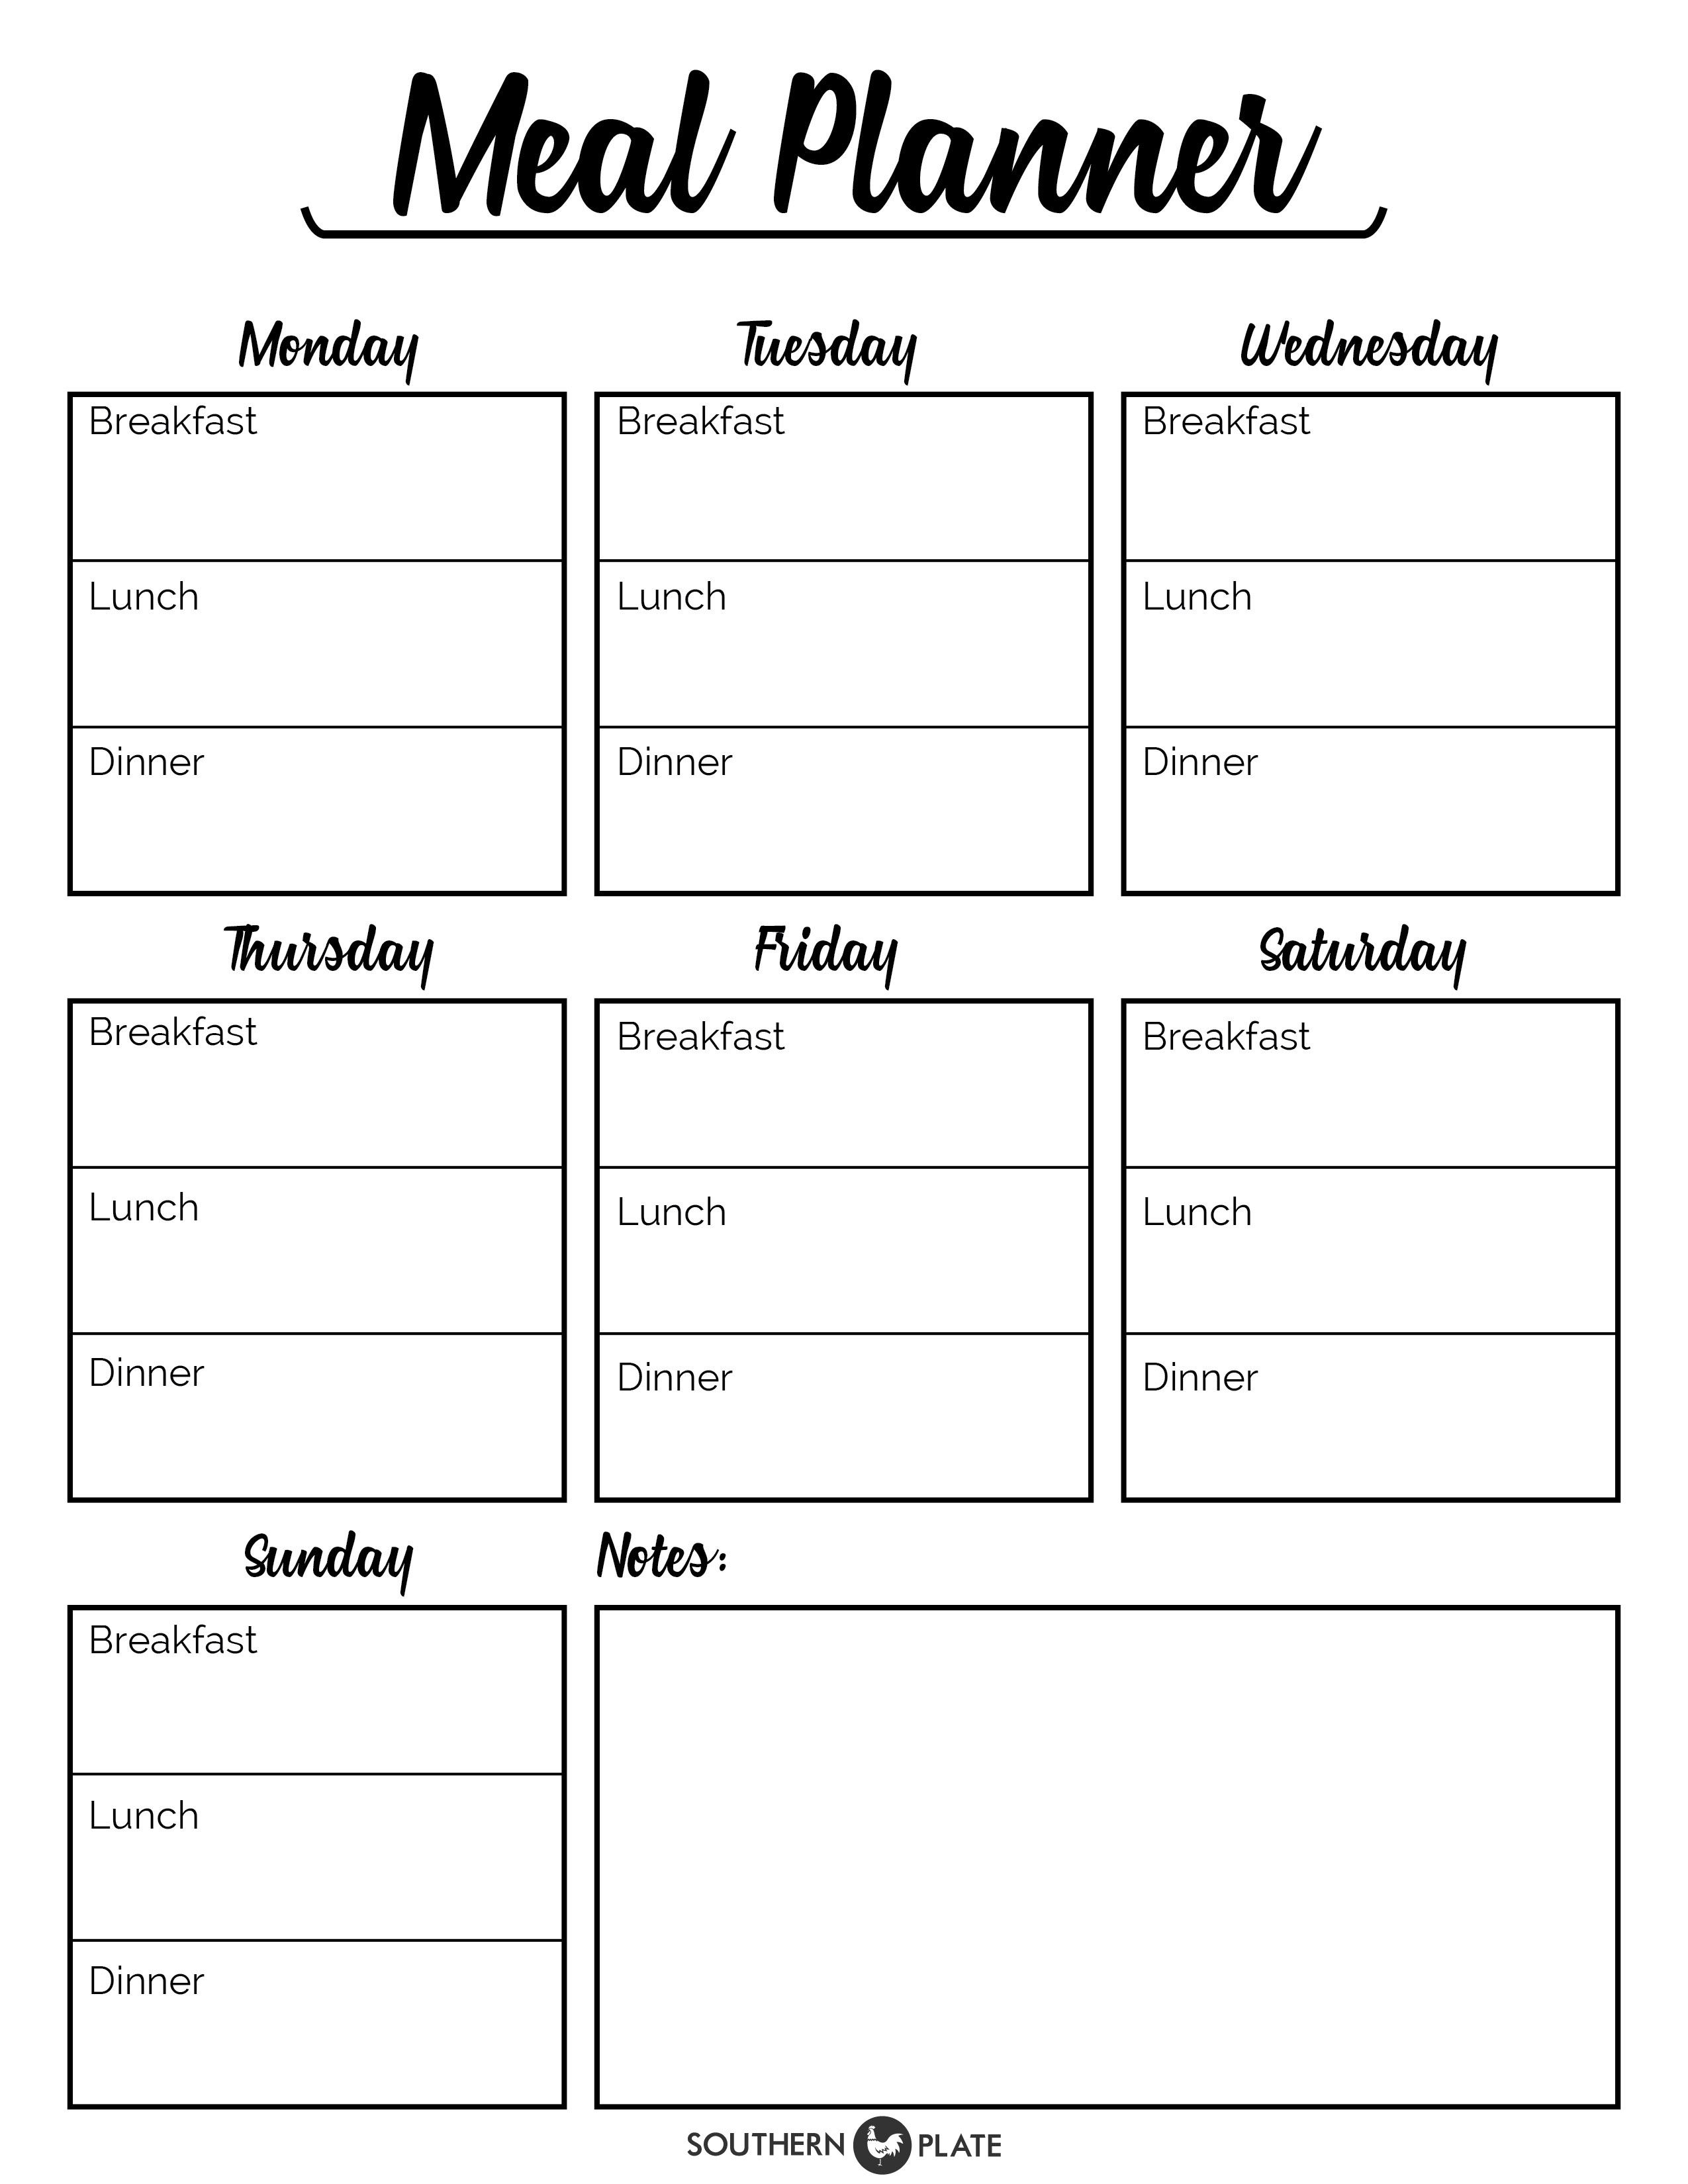 I'm happy to offer you this free printable Meal Planner